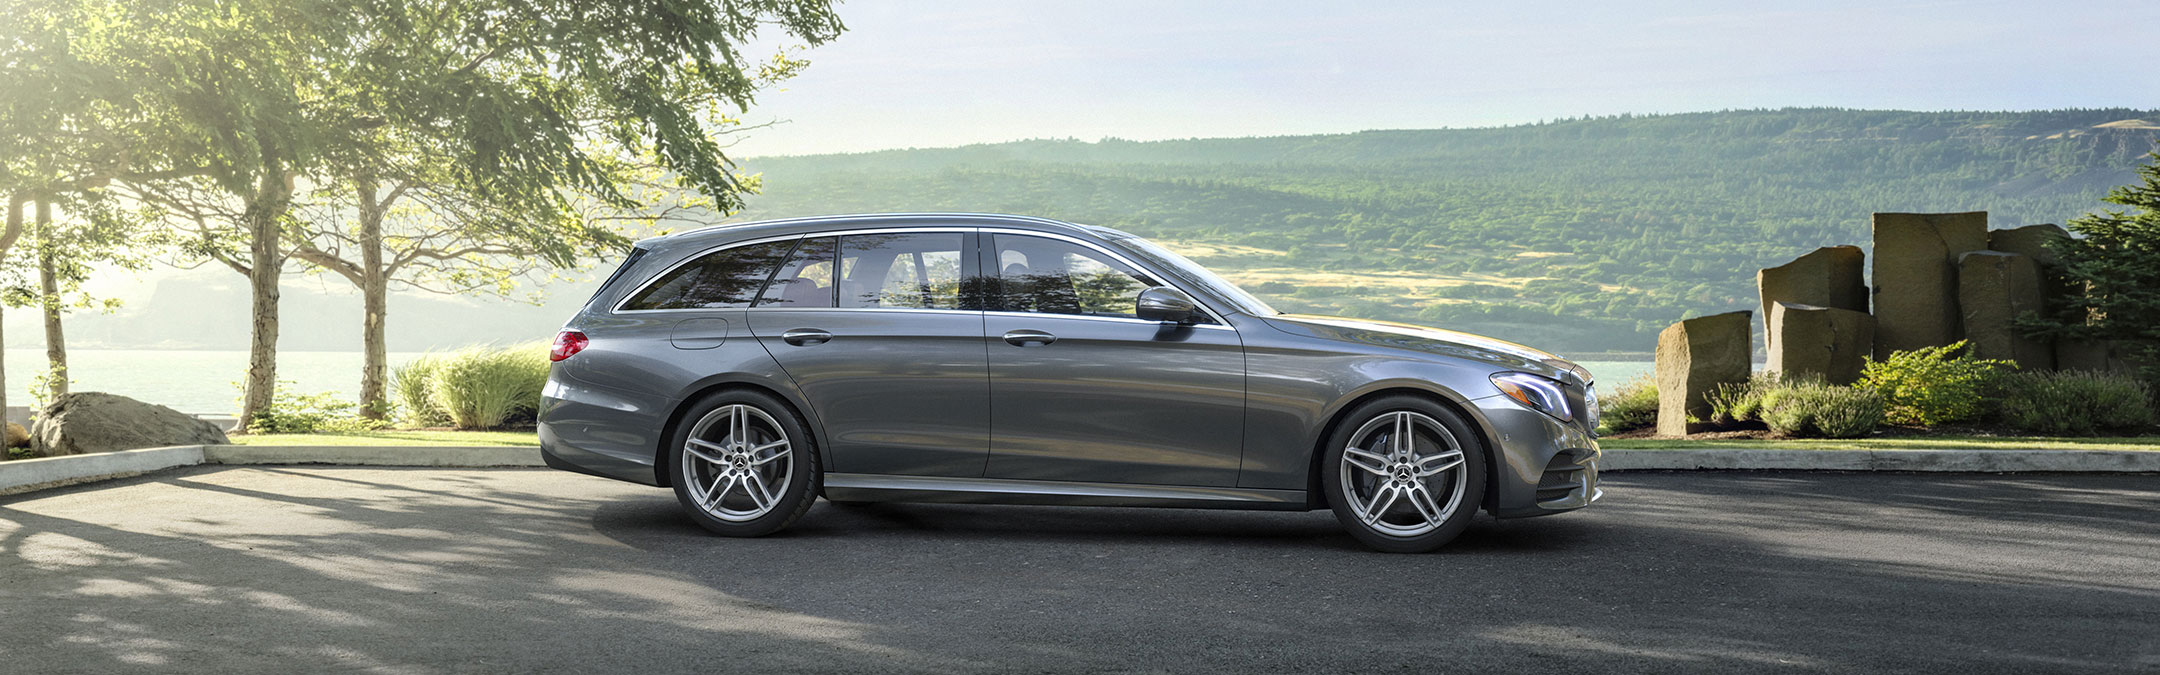 2018 e class wagon mercedes benz for Mercedes benz e320 wagon